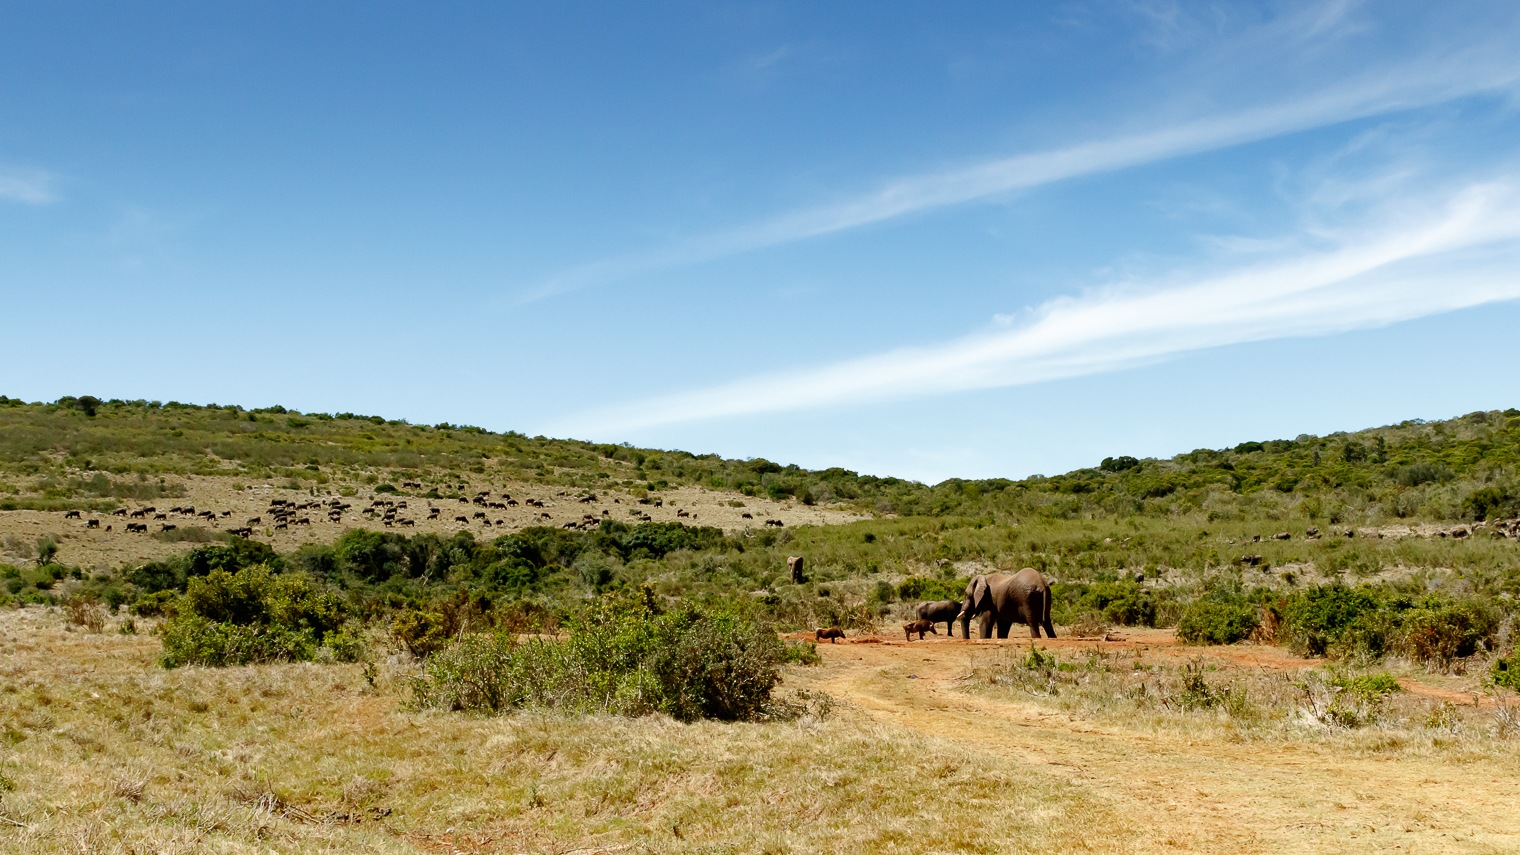 Field full of Buffaloes and elephants at the watering hole by Mark de Scande